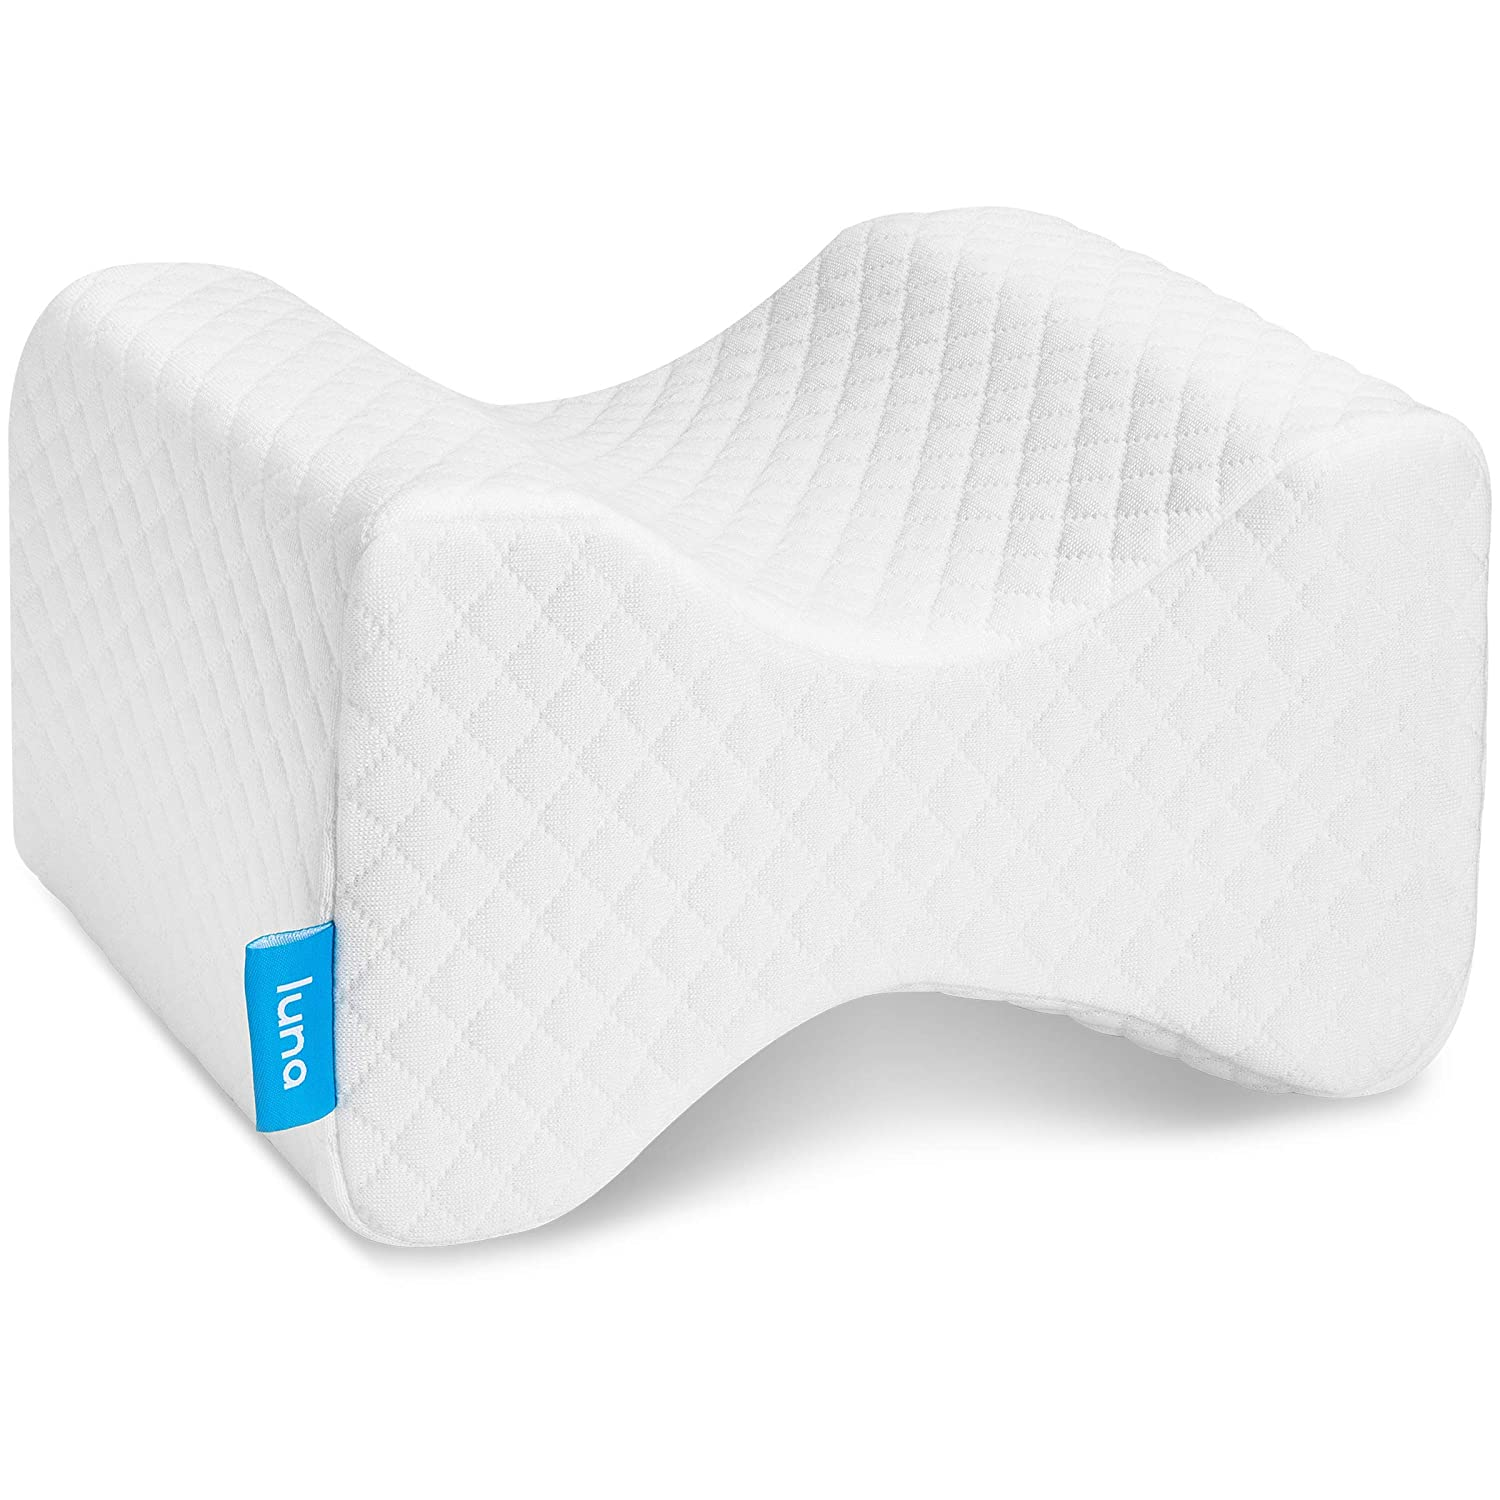 Luna Orthopedic Knee Pillow for Sciatica Relief, Back Pain, Leg Pain, Pregnancy, Hip and Joint Pain | Memory Foam Wedge Contour for Side, Back & Side Sleepers | CertiPUR-US Certified & Designed in USA